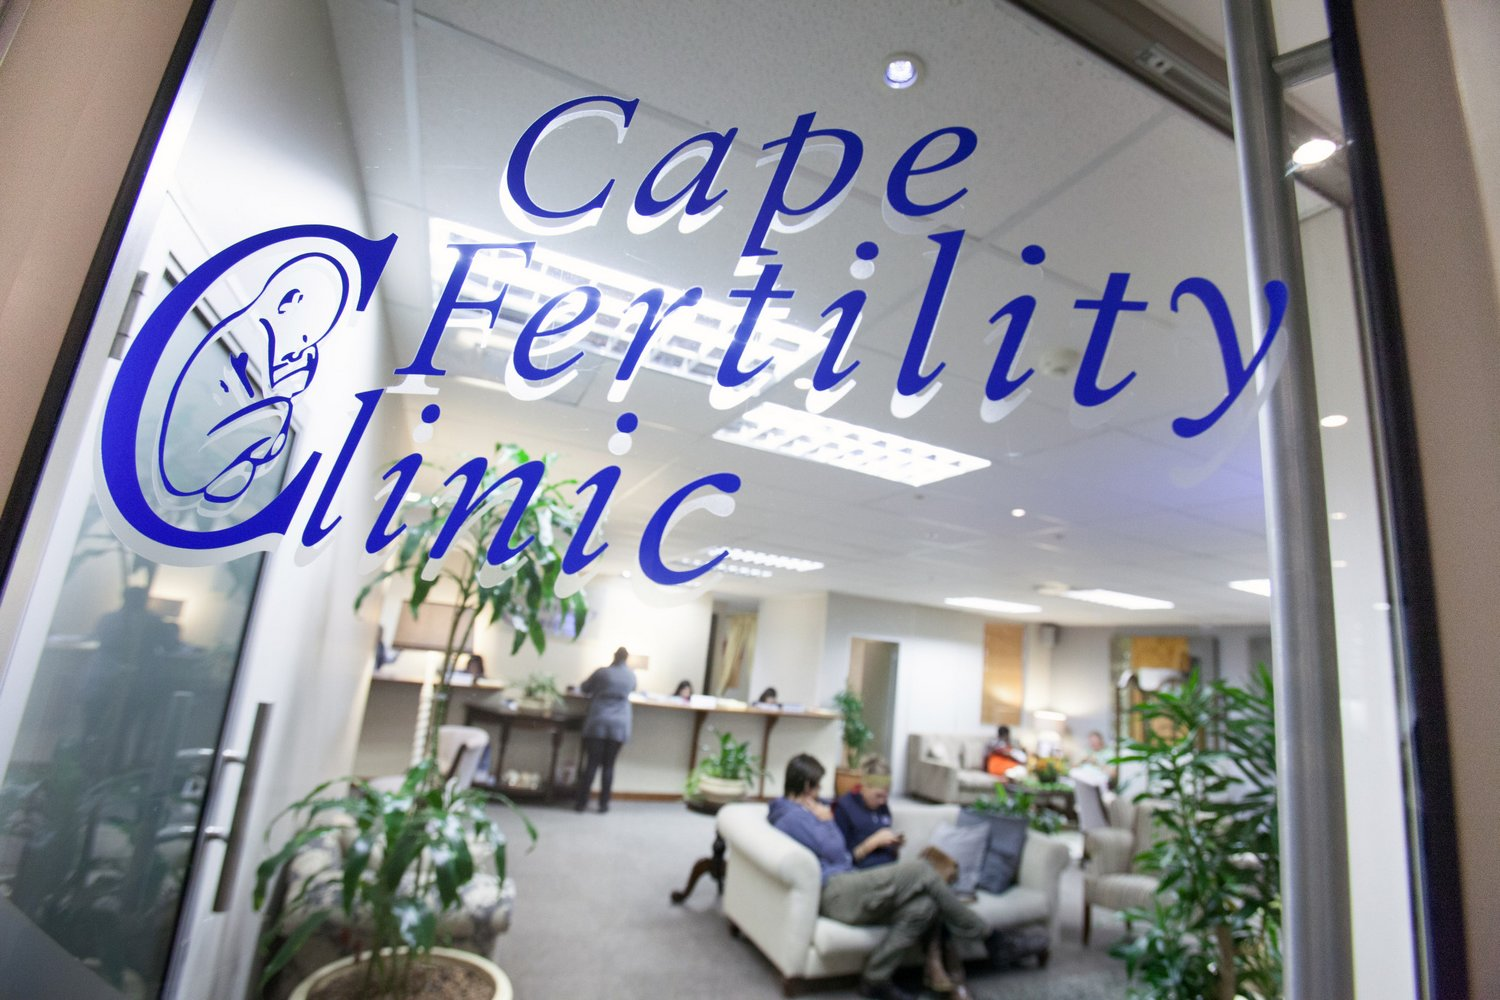 Cape-Fertility-Clinic-e1394623443273-278x182